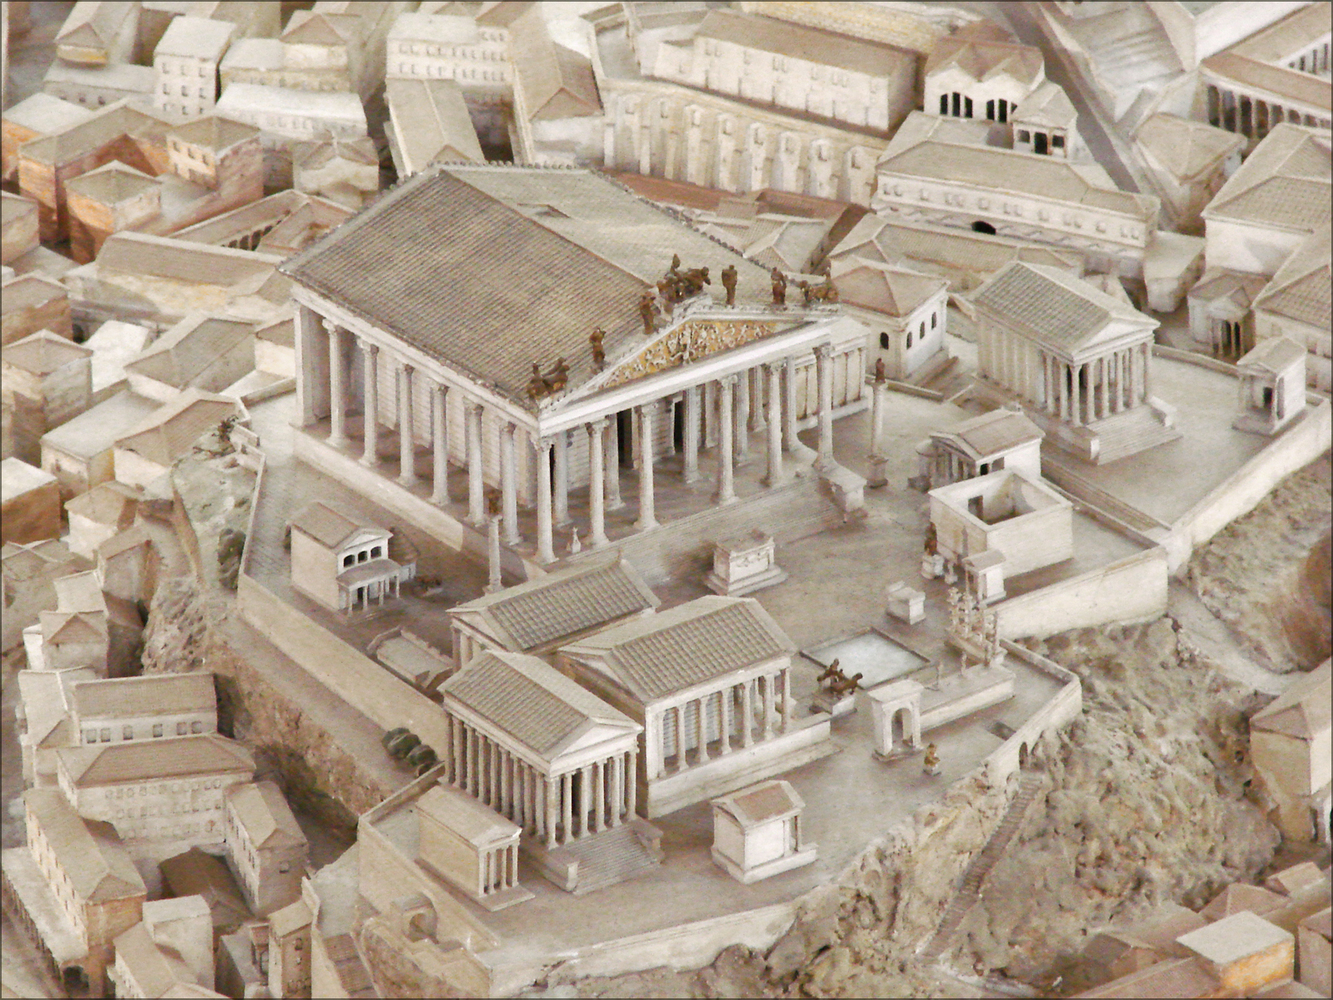 Gallery of Explore This 1:250 Model of Ancient Rome Which